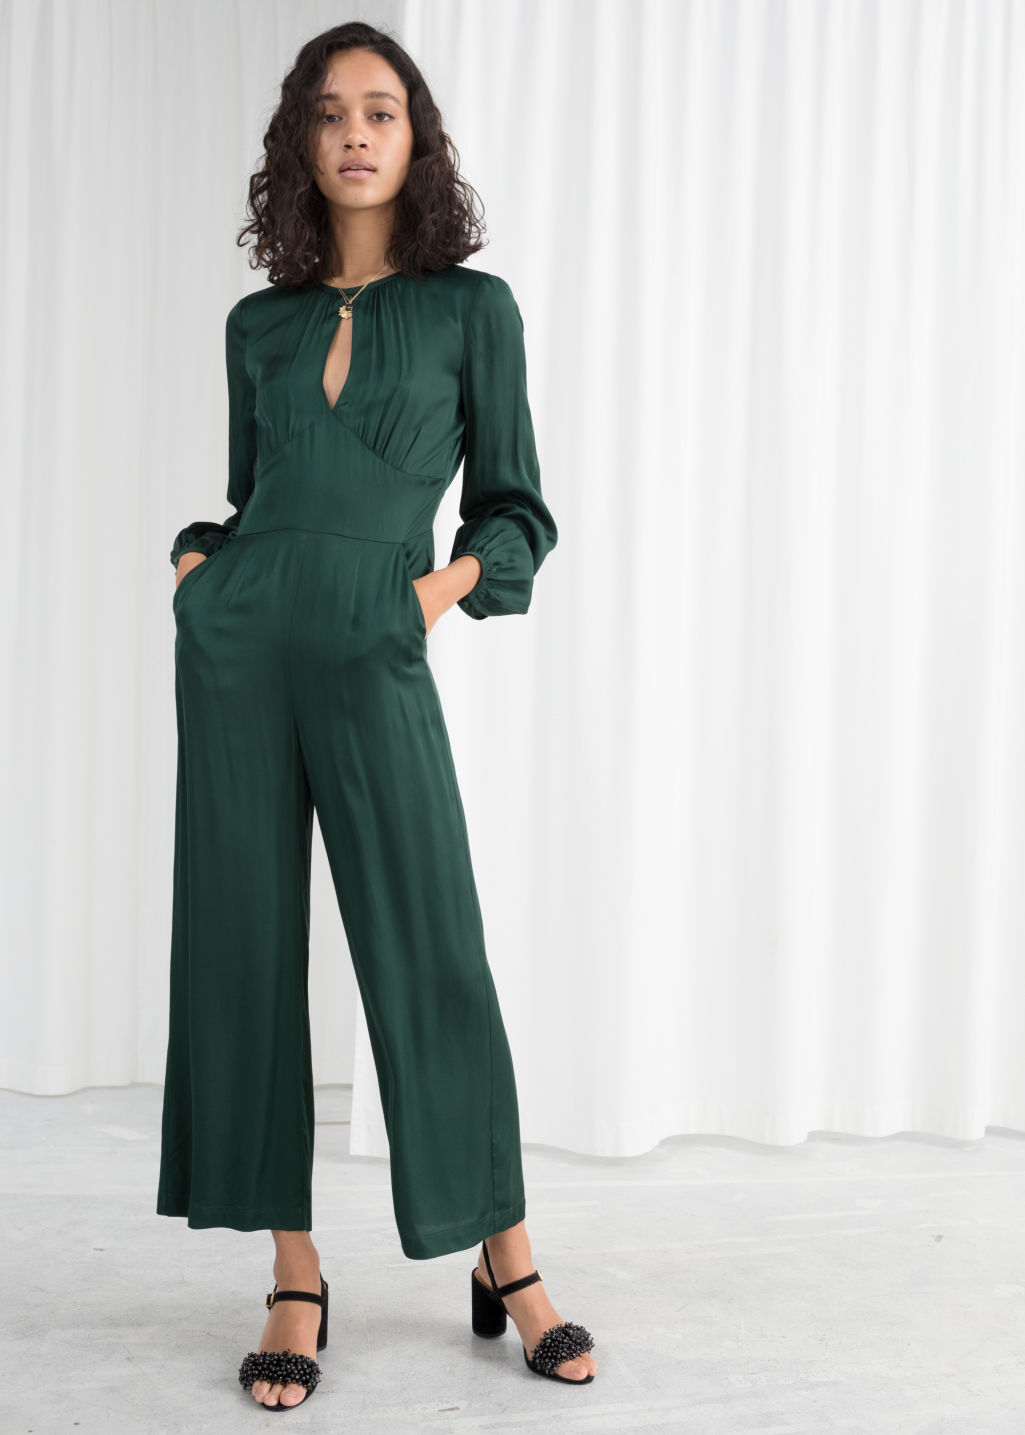 Long Sleeve Satin Jumpsuit  Green  Jumpsuits  Playsuits